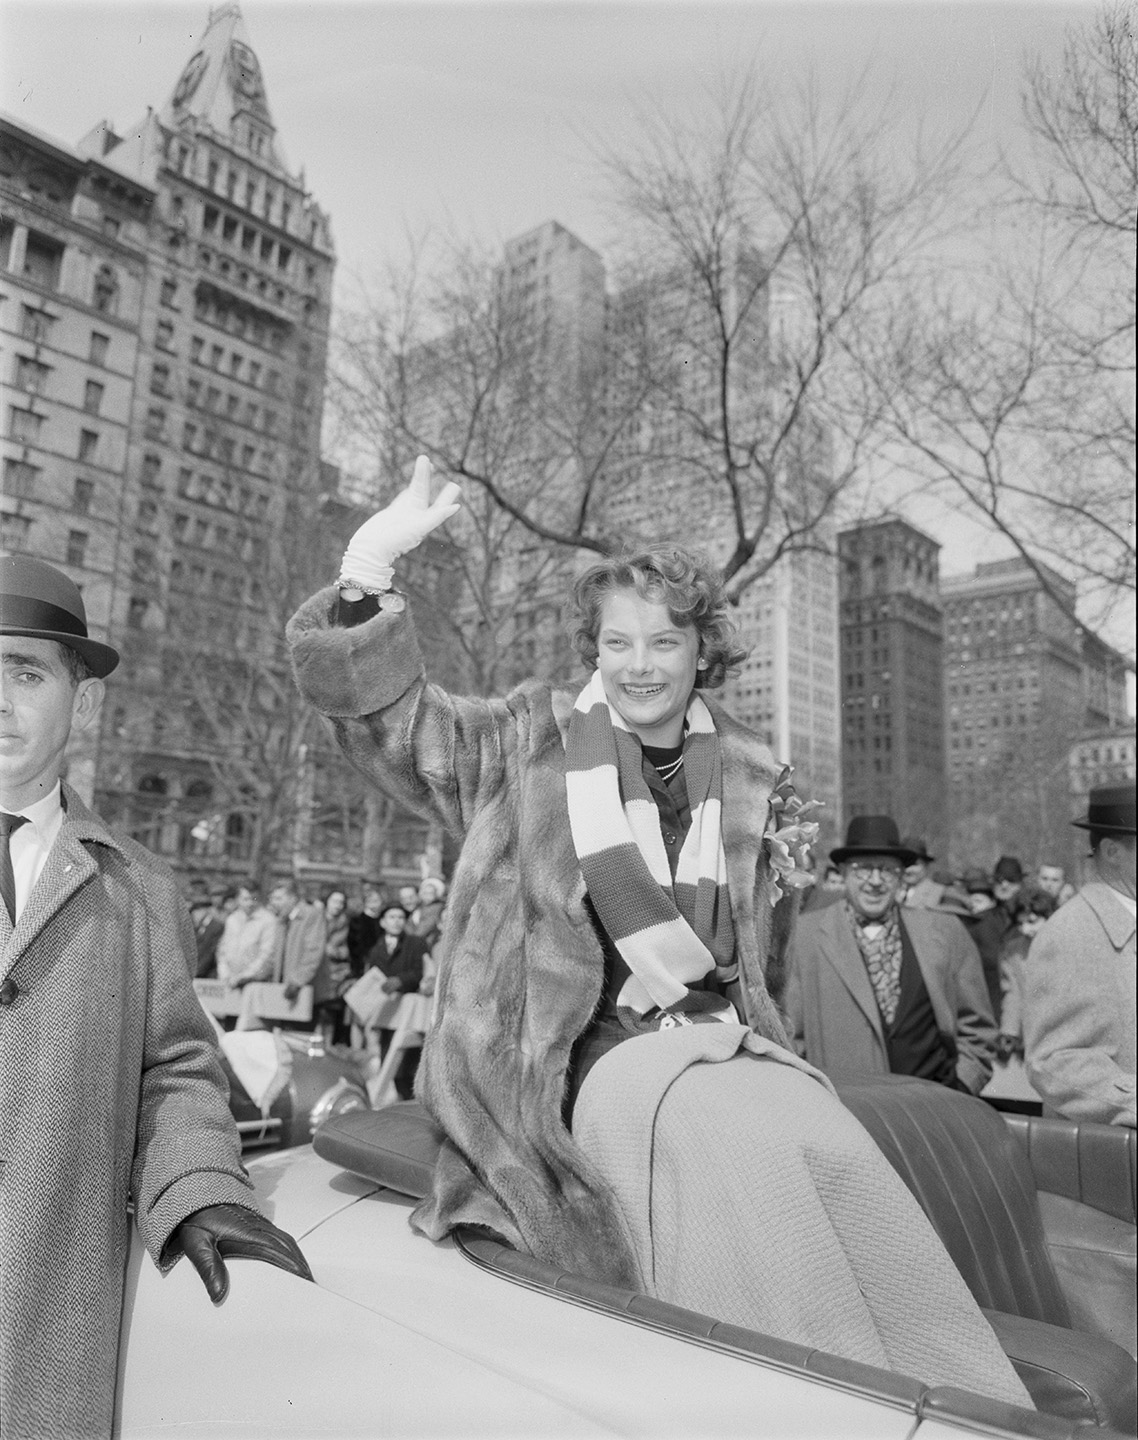 Carol Heiss arriving at City Hall, March 9, 1960. Official Mayoral Photographs, NYC Municipal Archives.